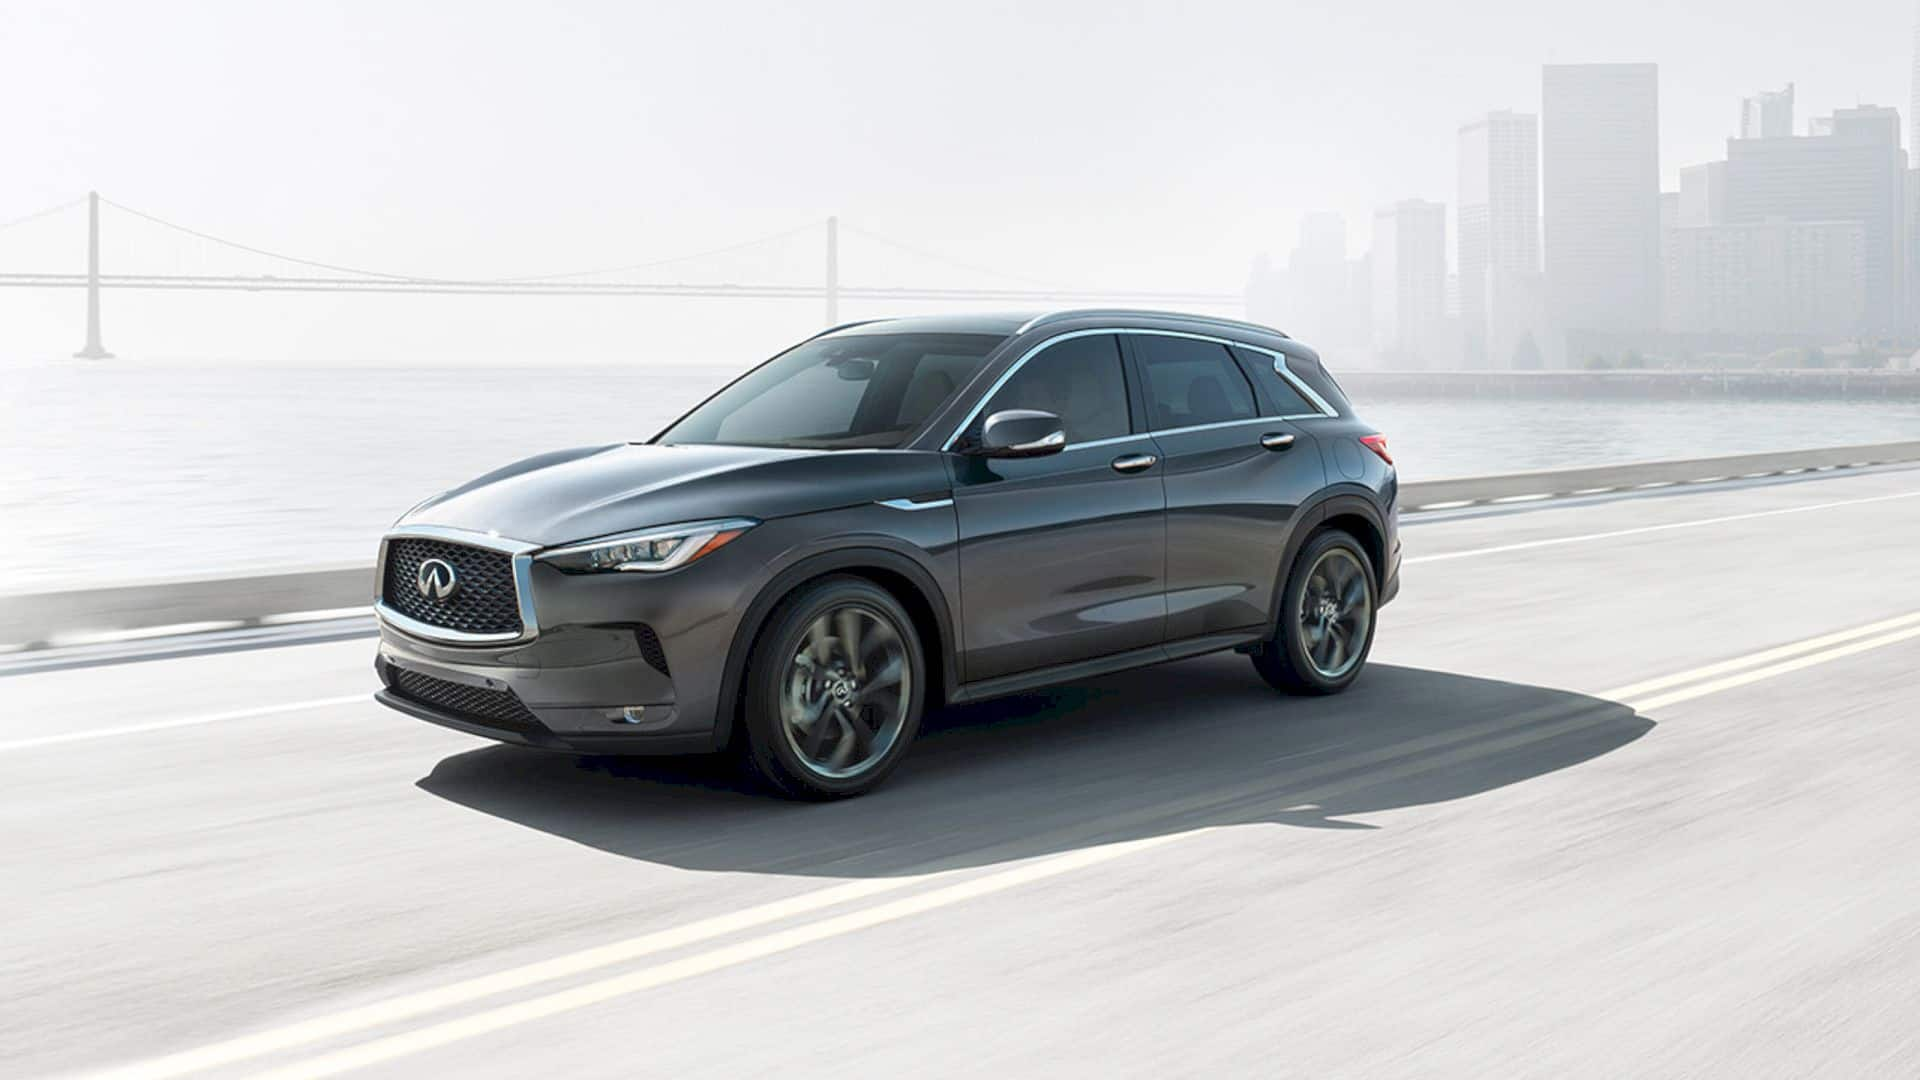 The All-New 2019 INFINITI QX50: The Journey Within